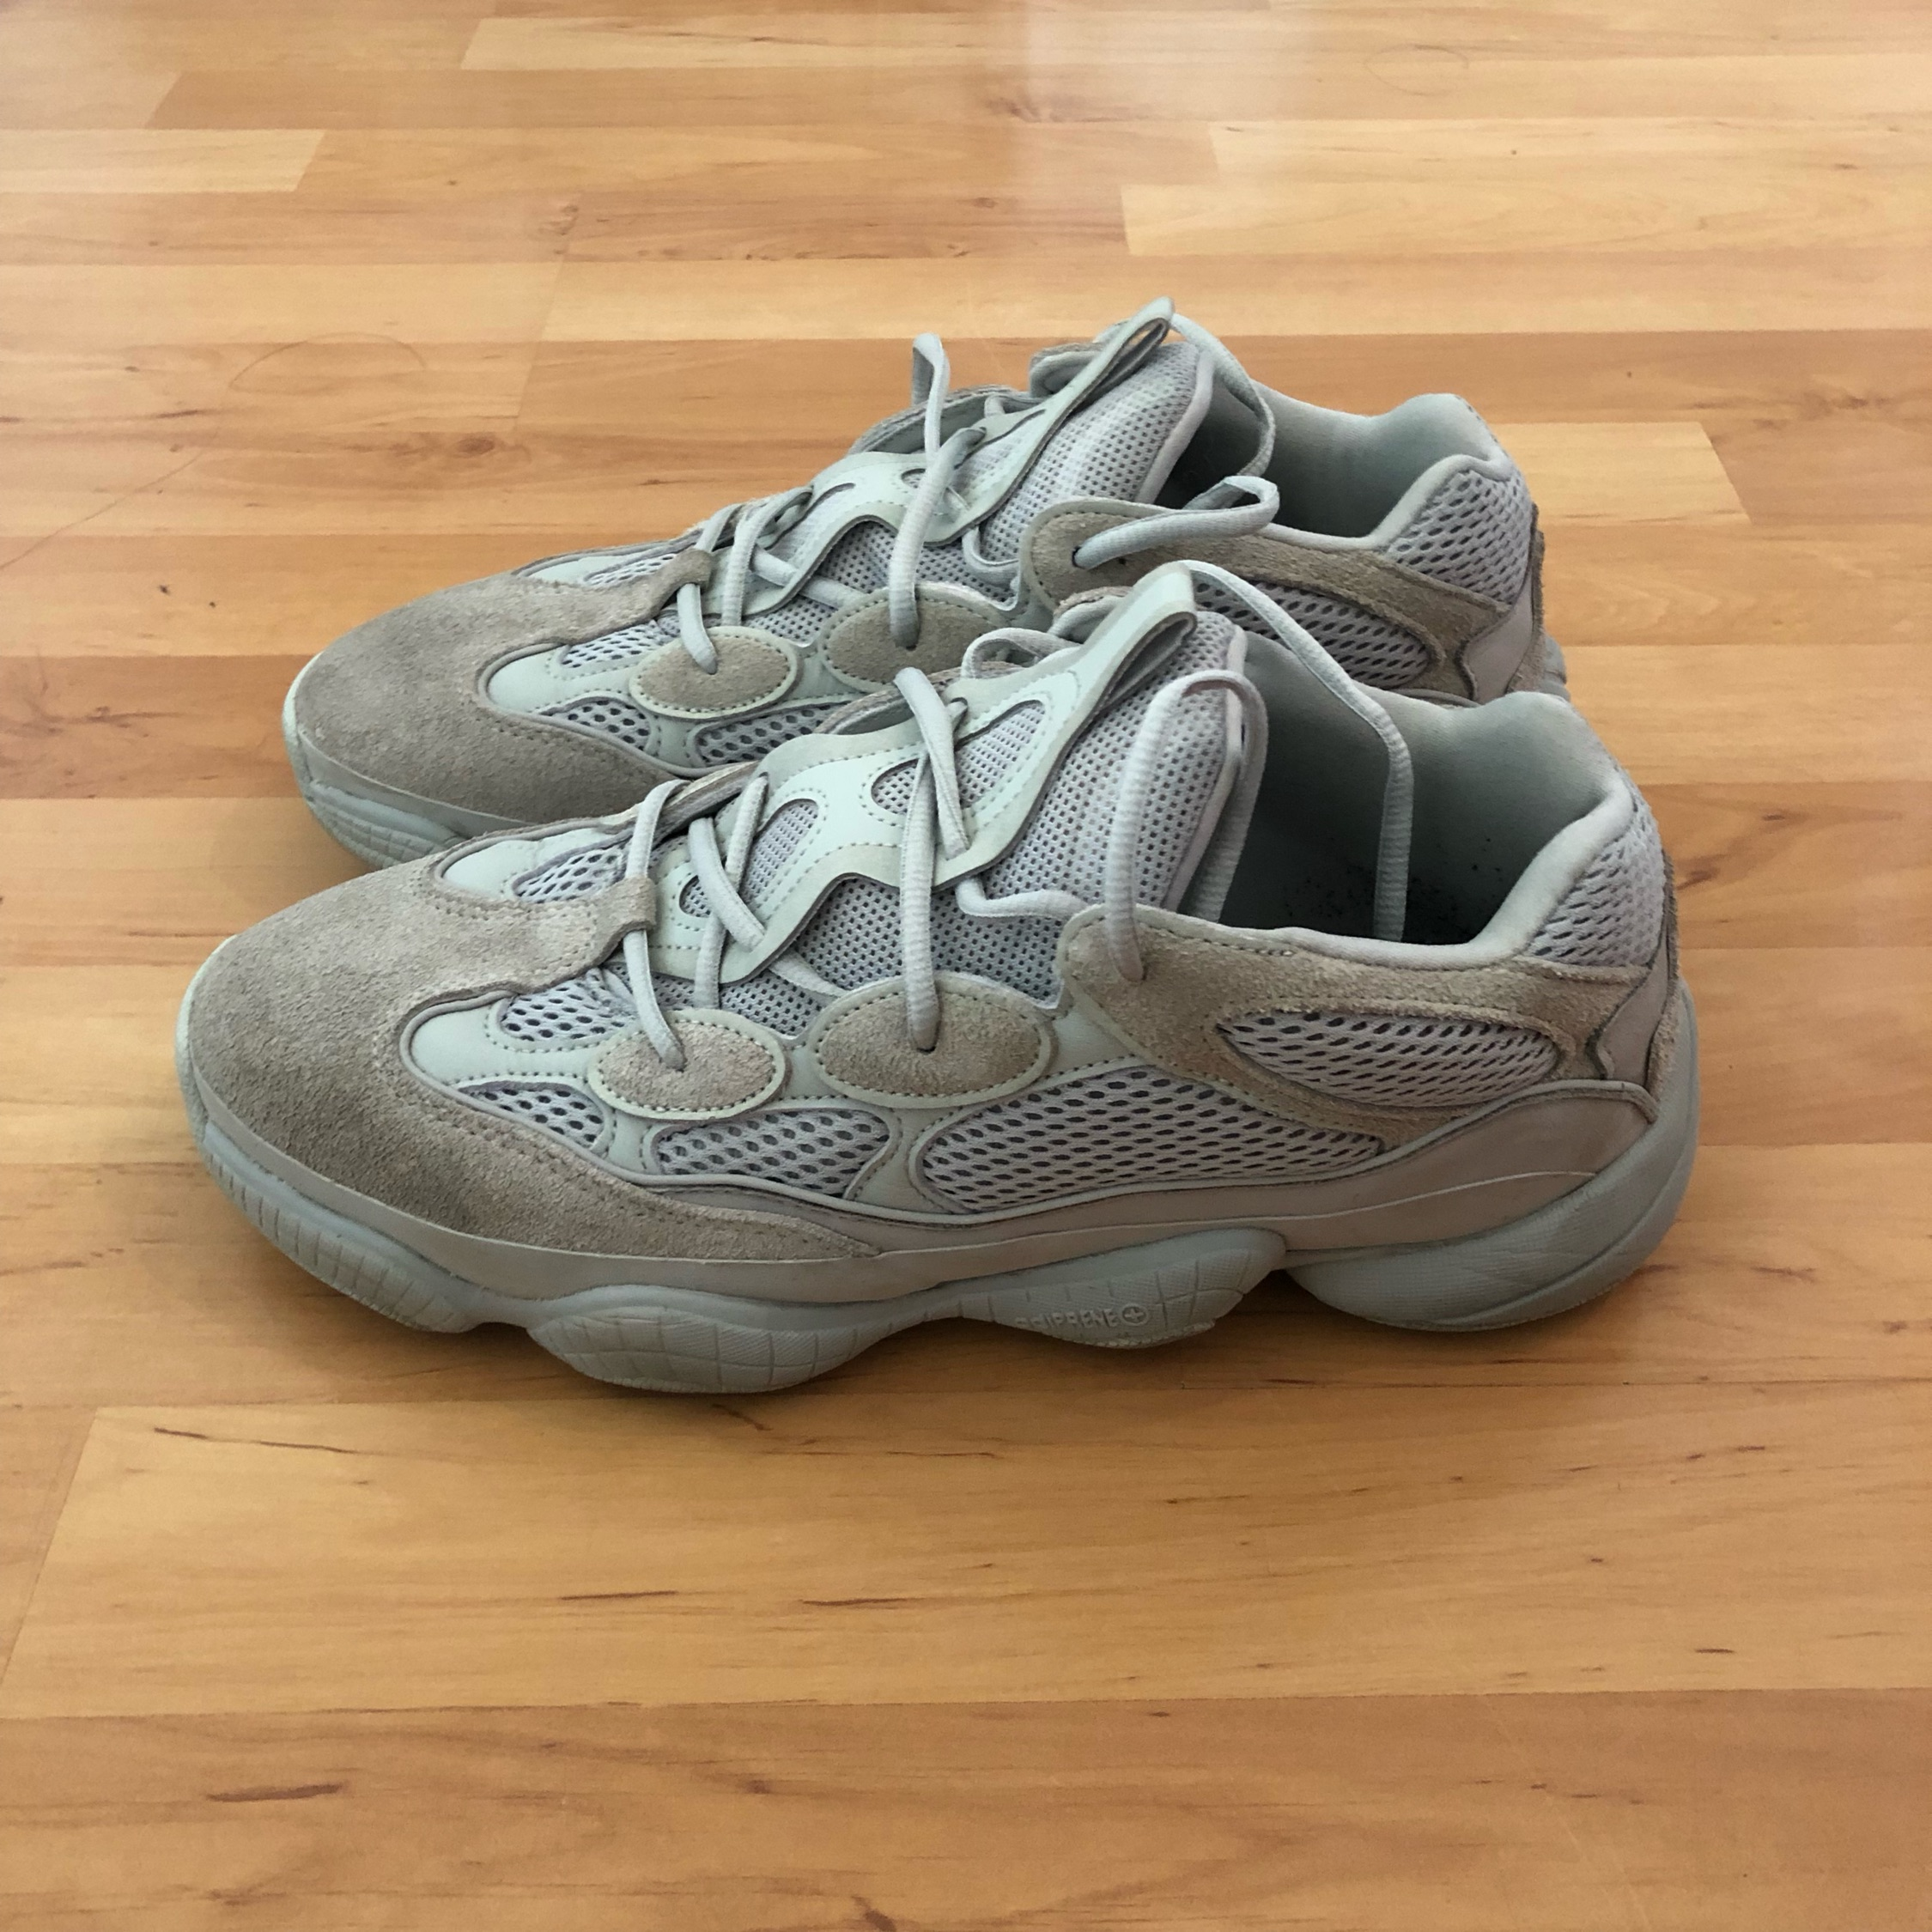 low priced 5c48b 411e8 Adidas - Yeezy 500